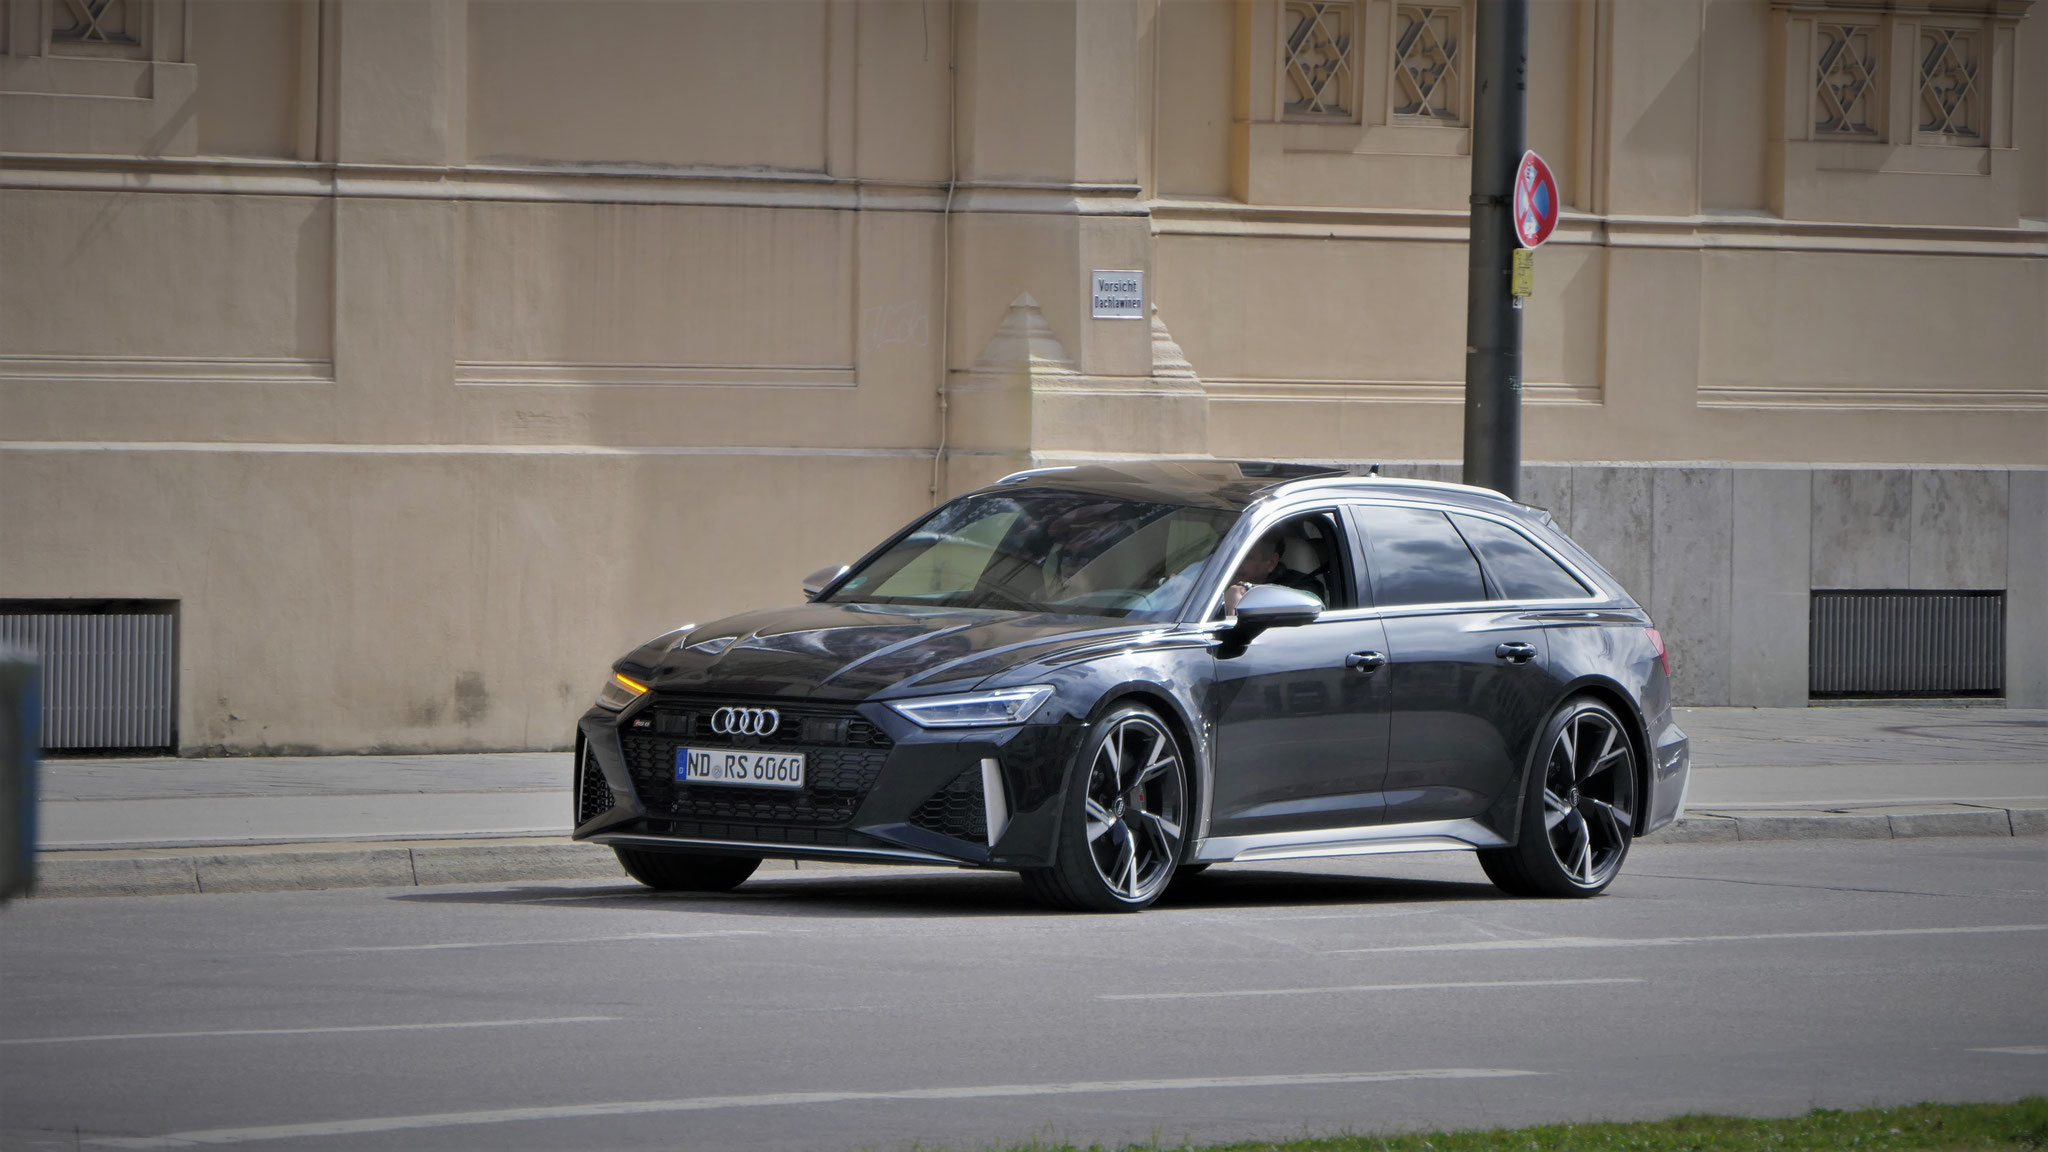 Audi RS6 - ND-RS-6060